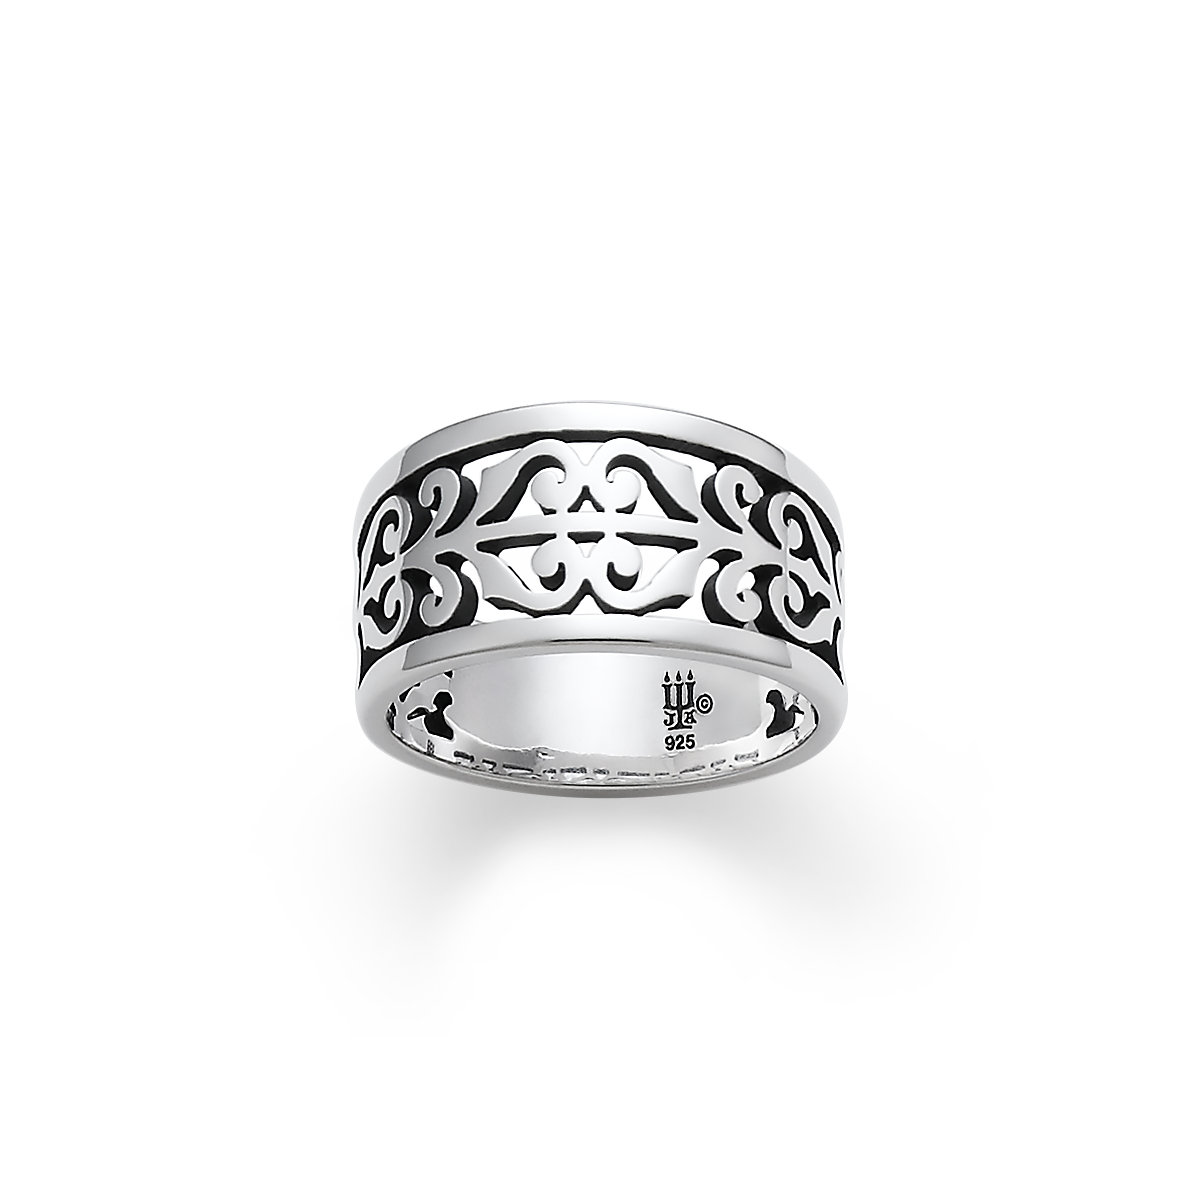 Stackable, Cocktail, & Wedding Band Rings - James Avery